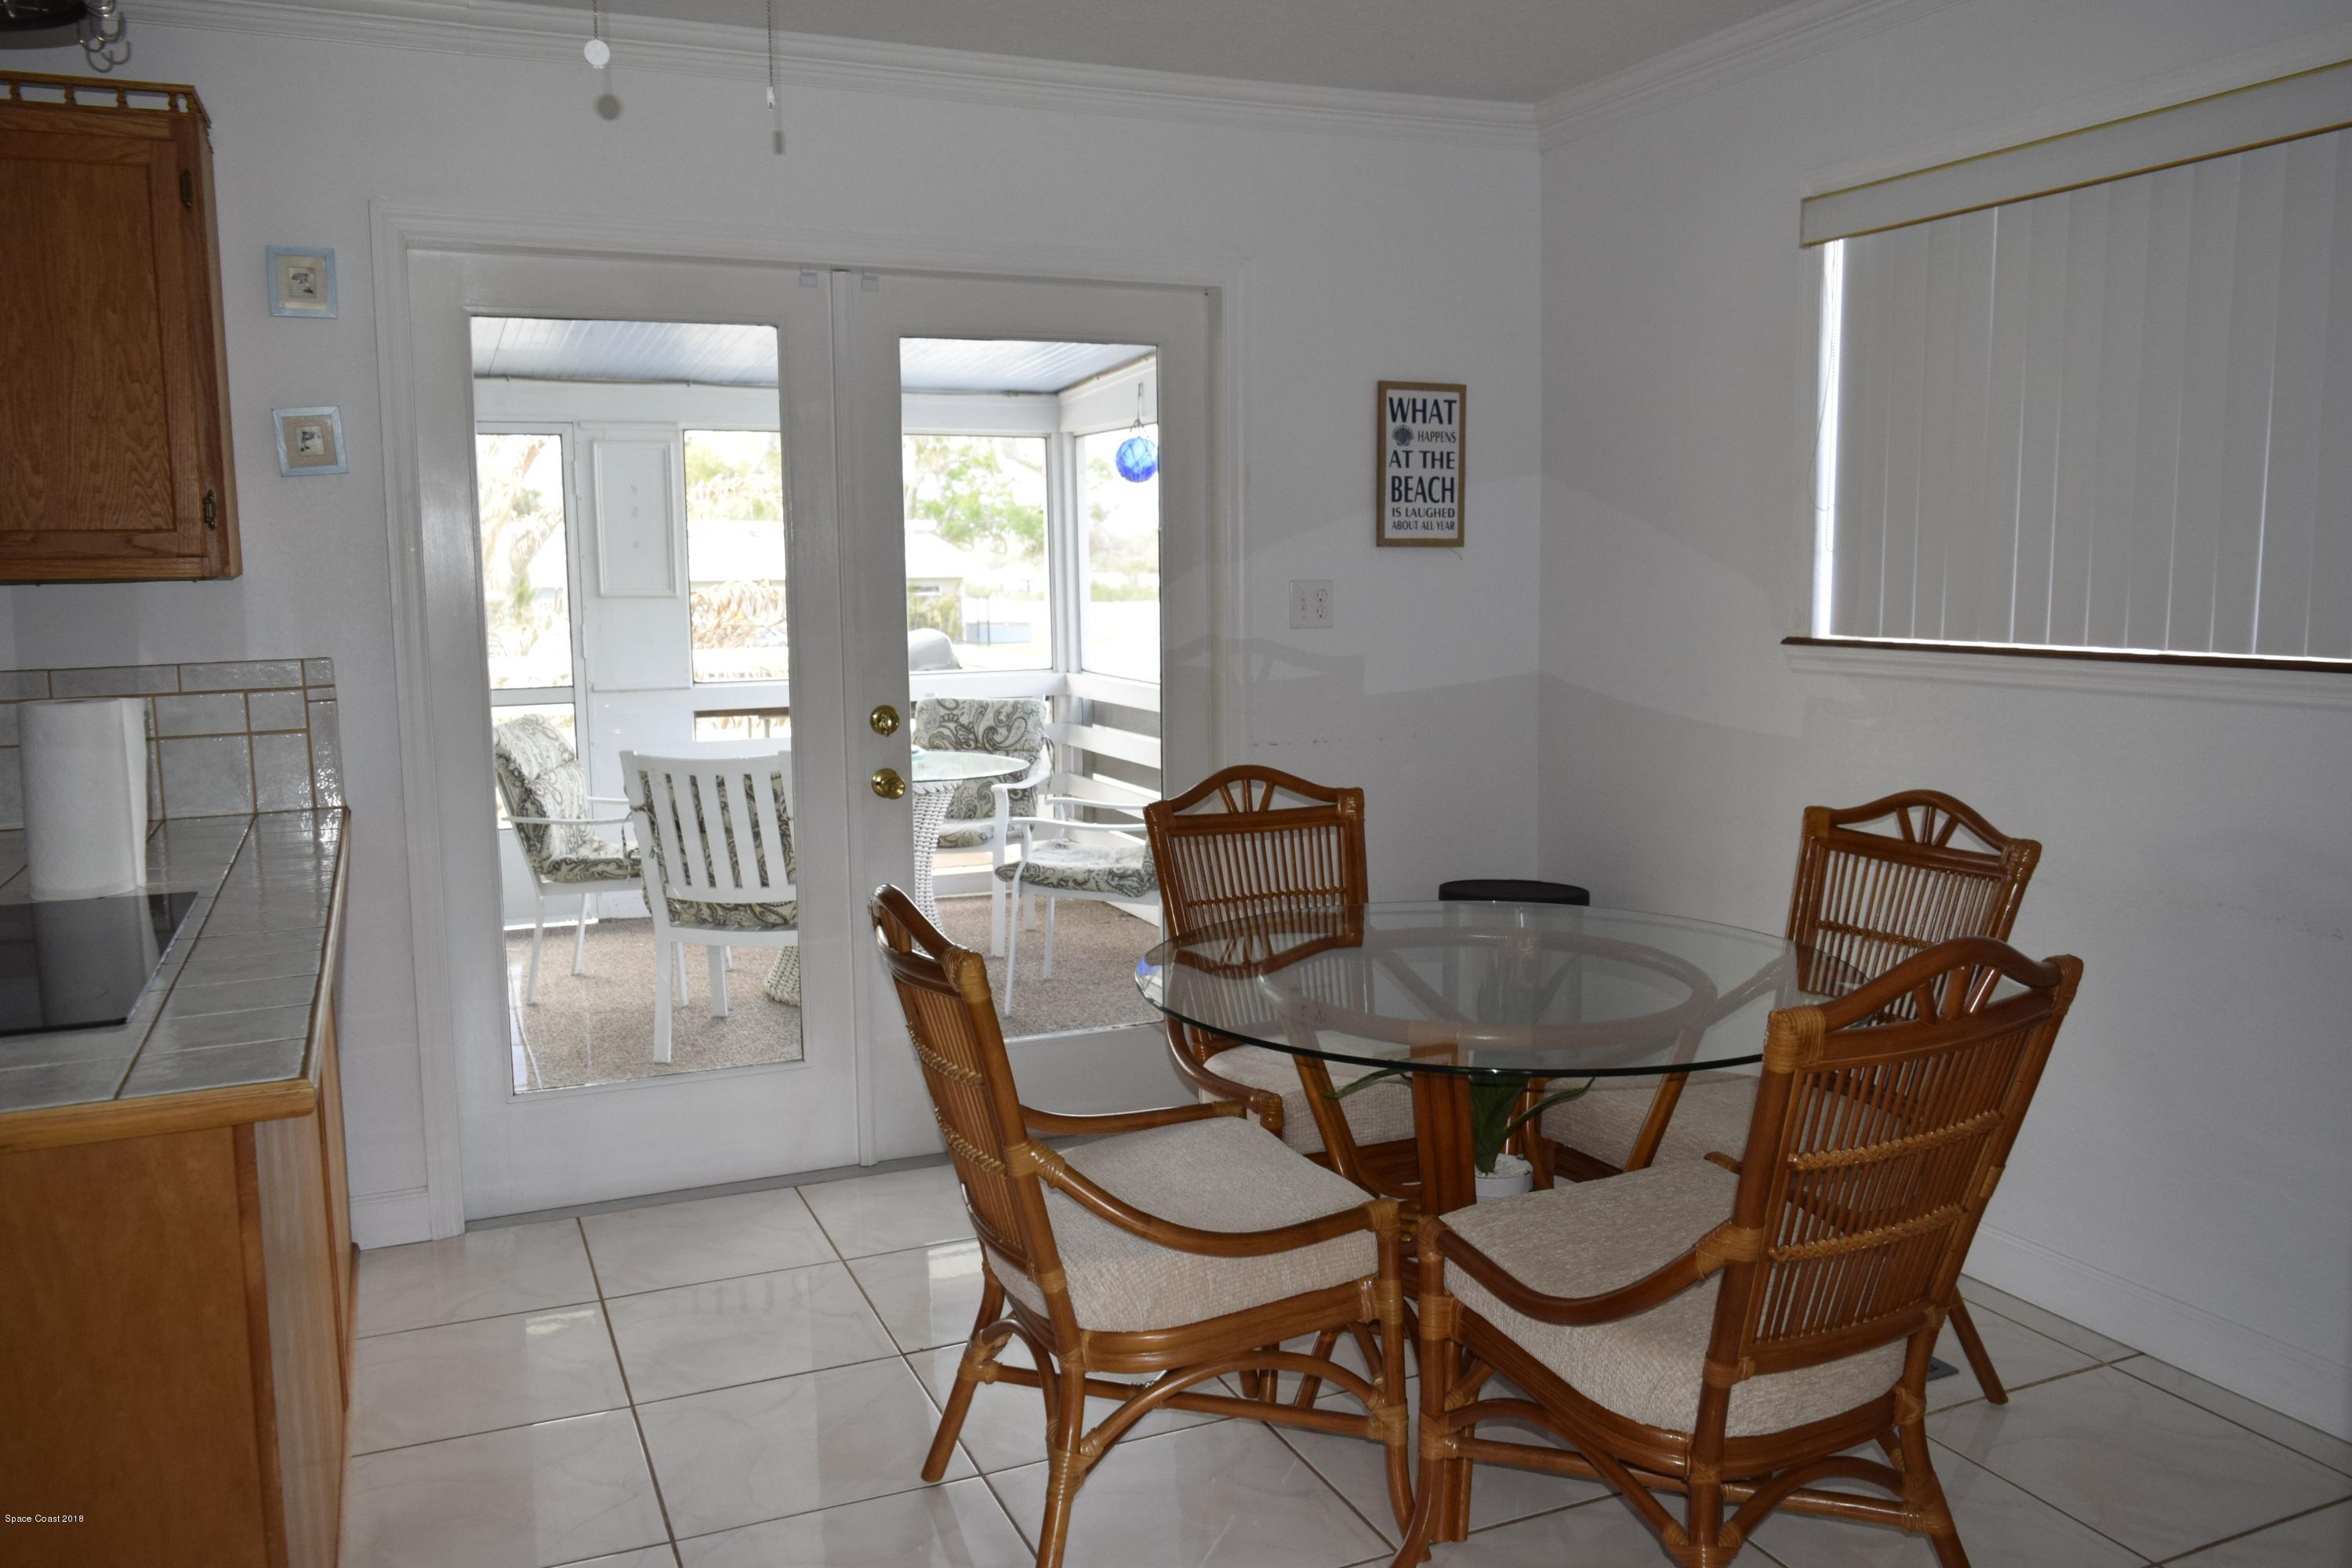 Additional photo for property listing at 191 Hazelwood River Road 191 Hazelwood River Road Edgewater, Florida 32141 États-Unis